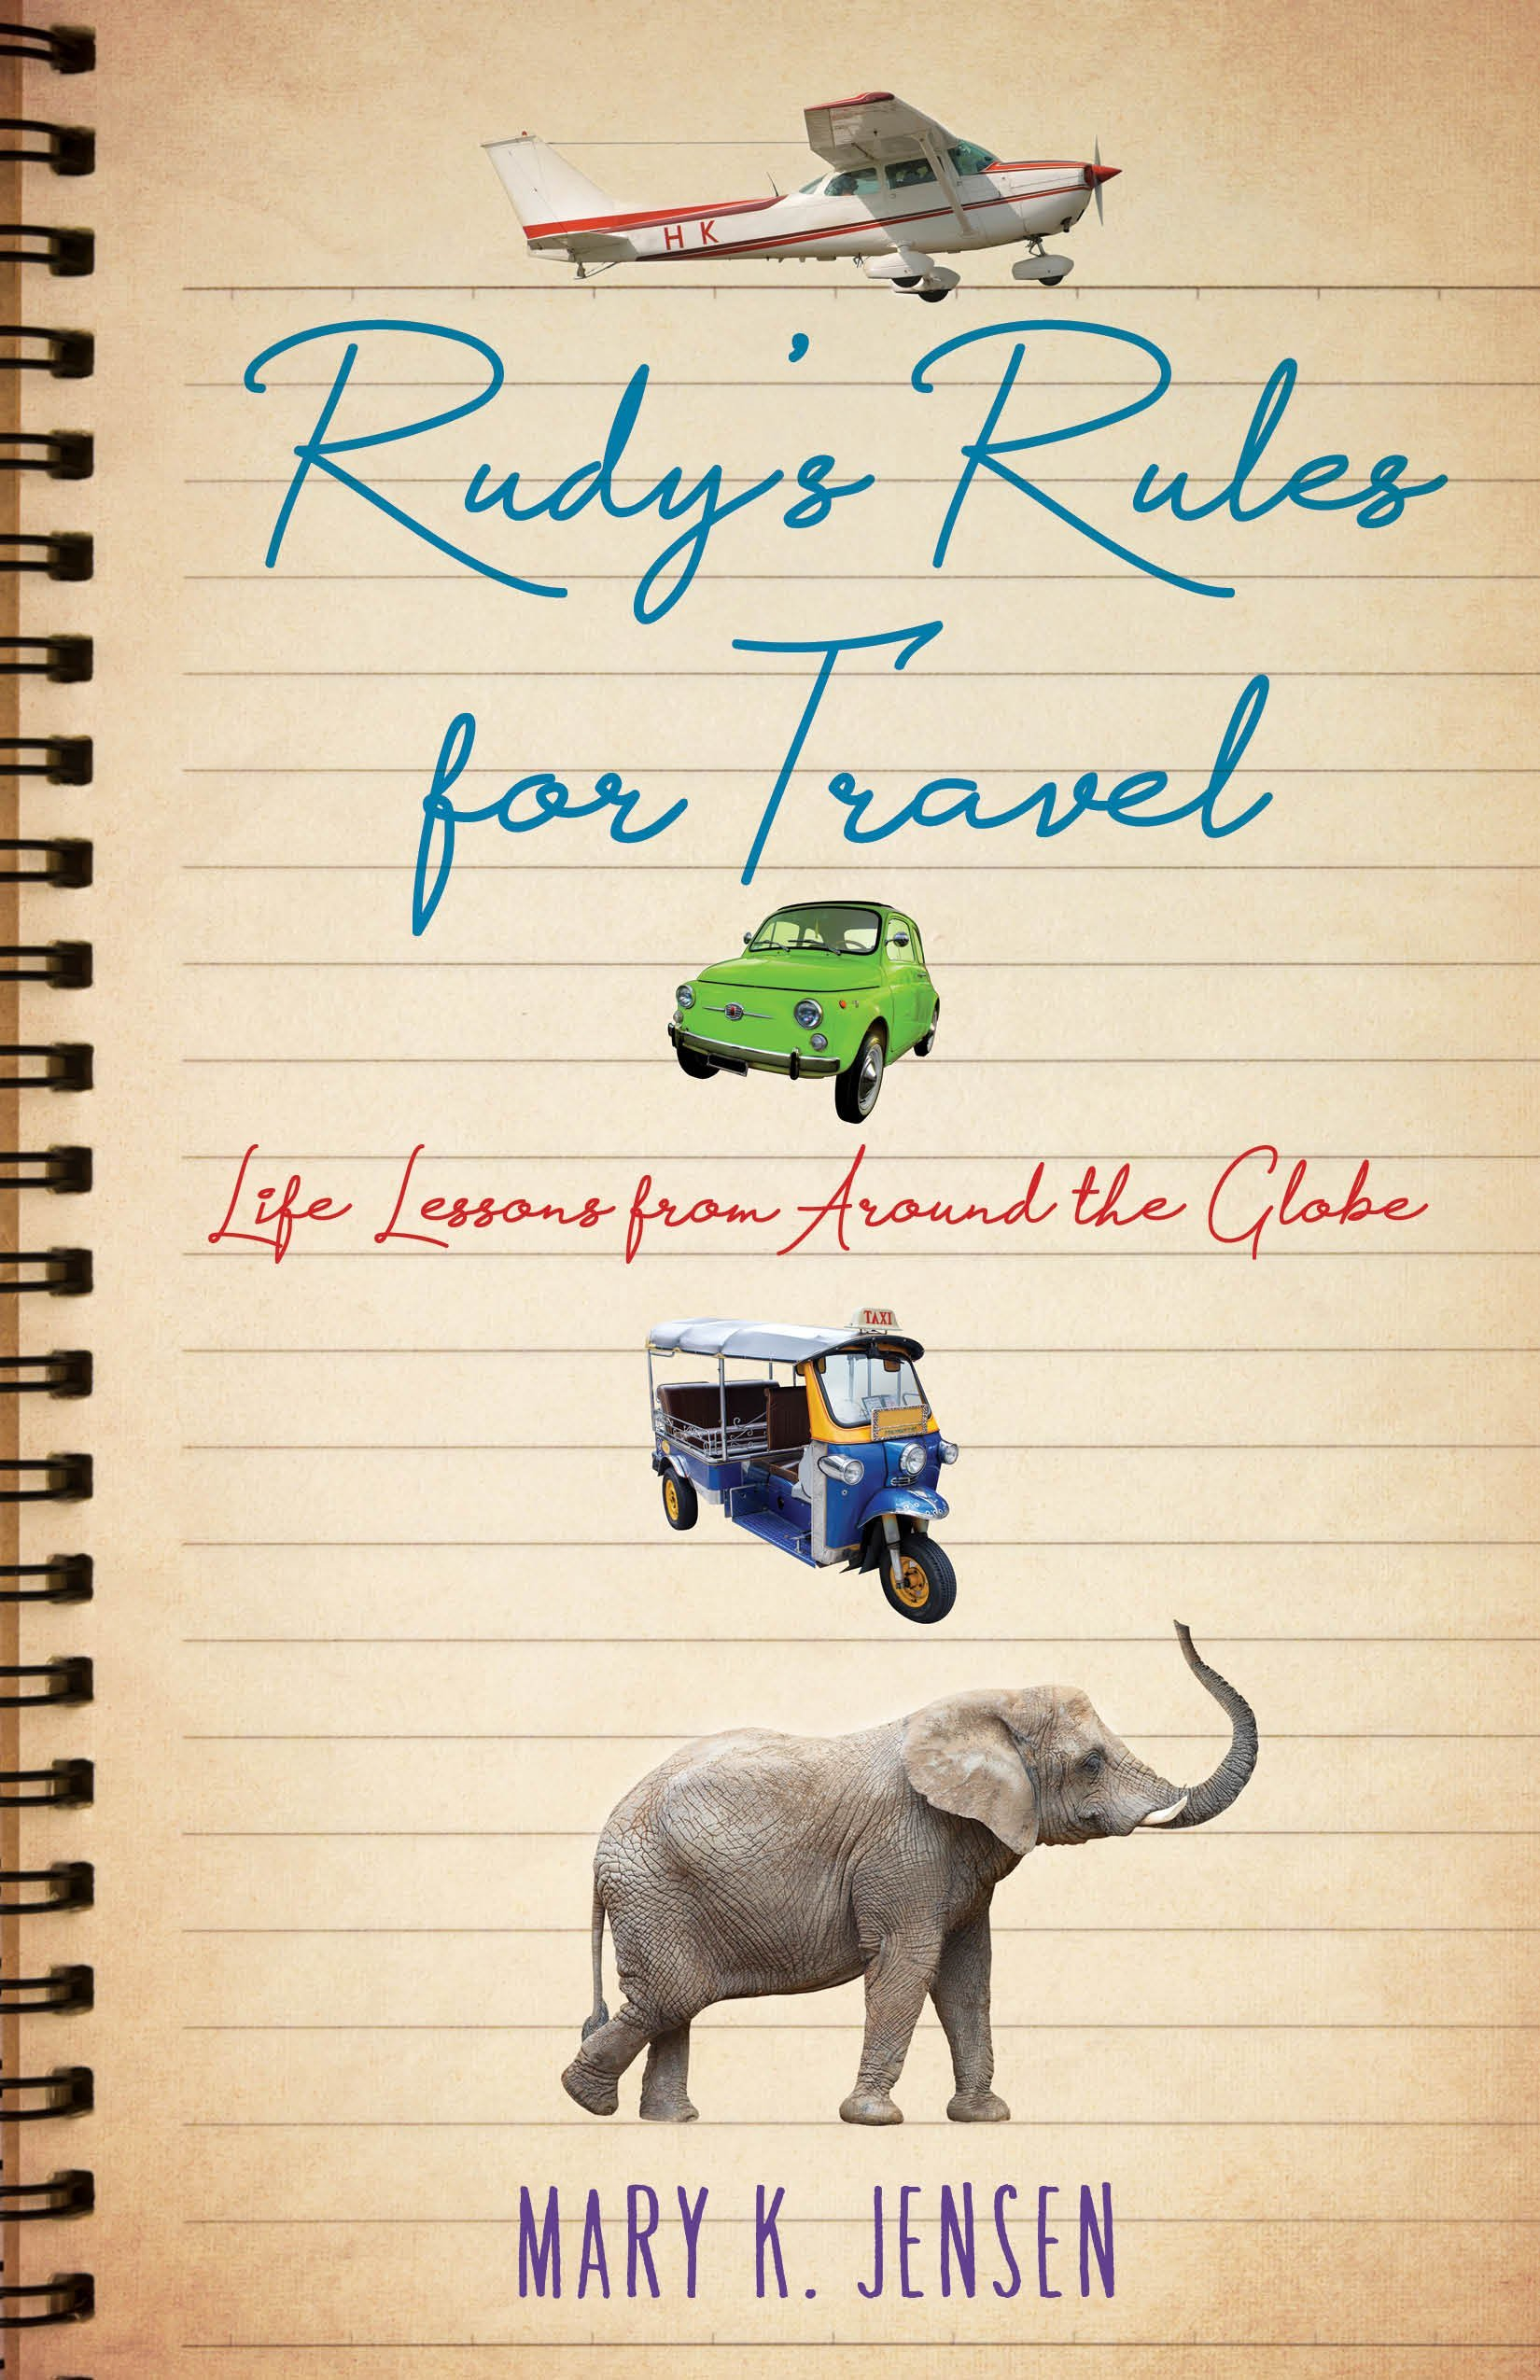 Rudy's Rules for Travel Life Lessons from Around the Globe